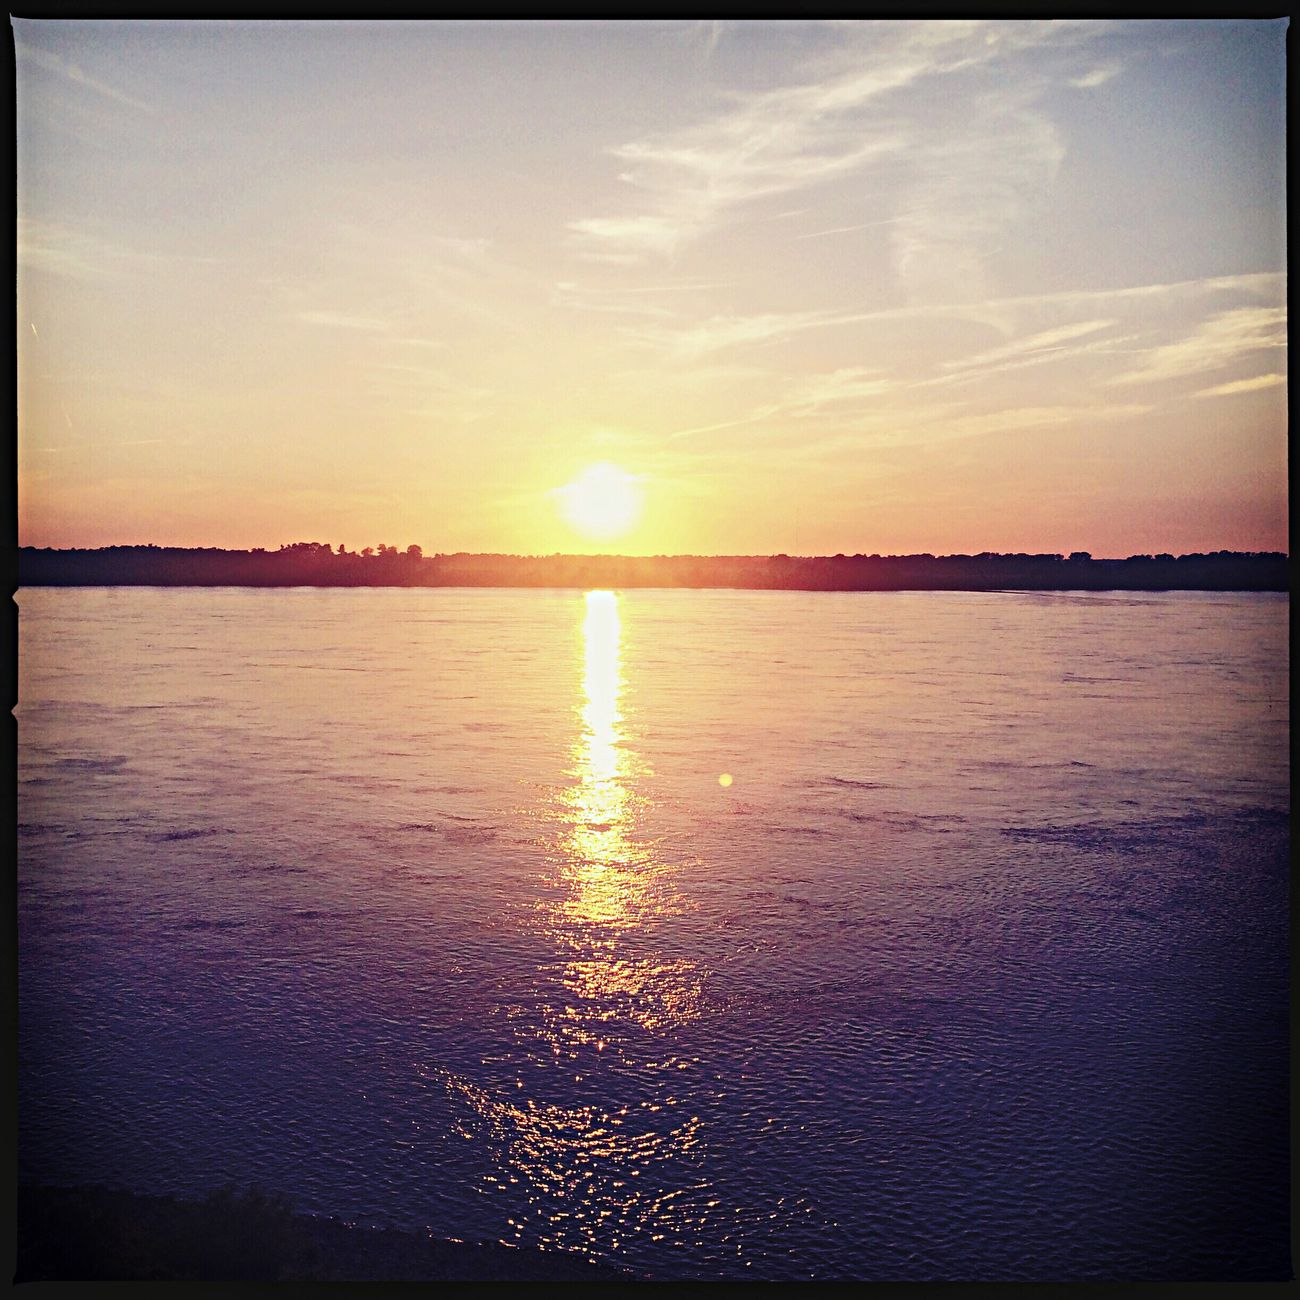 Sunset on the Mighty Mississippi